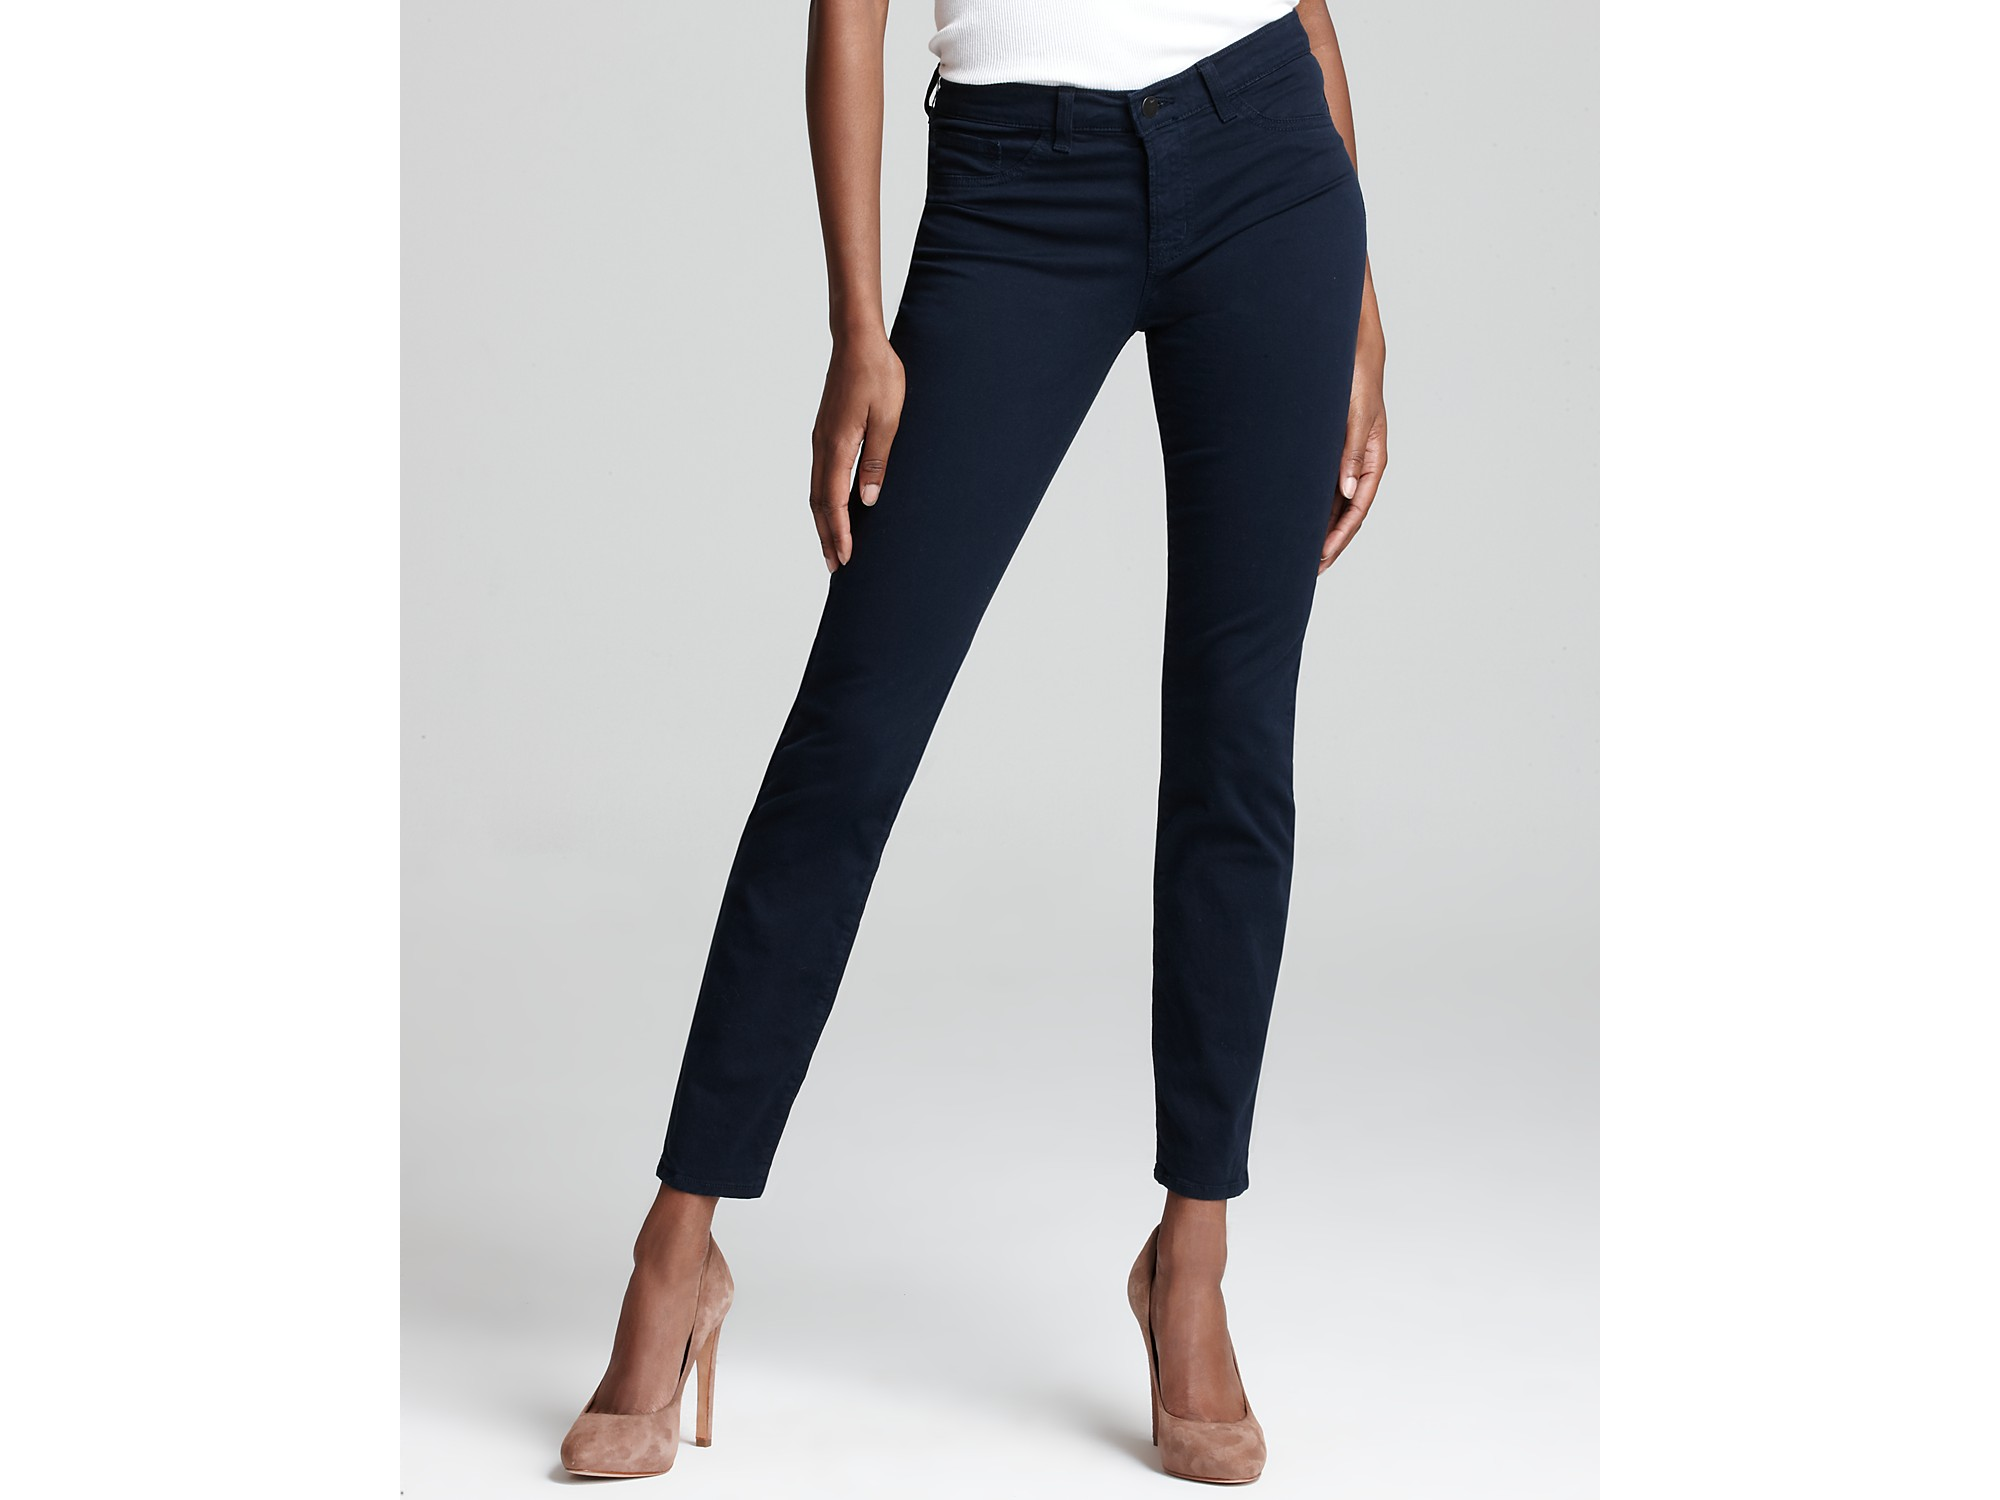 Free Shipping Best Prices Outlet Comfortable J Brand Woman Cotton-blend Twill Skinny Pants Navy Size 30 J Brand Wiki Online I1jdL2S5h